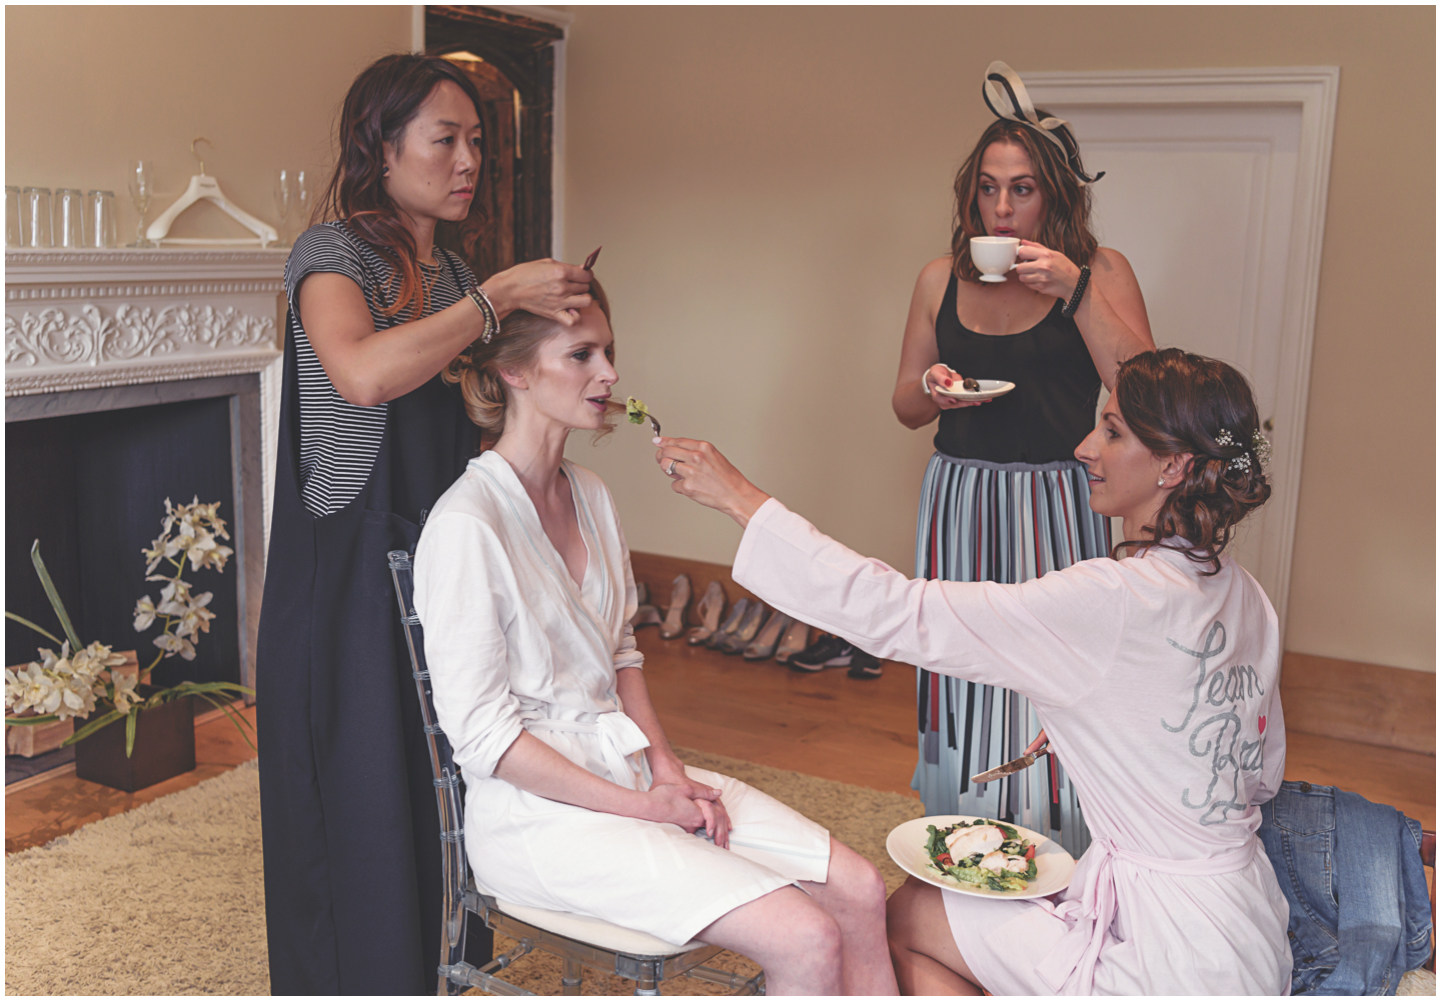 Make sure the bride eats - we don't want her fainting during the ceremony!